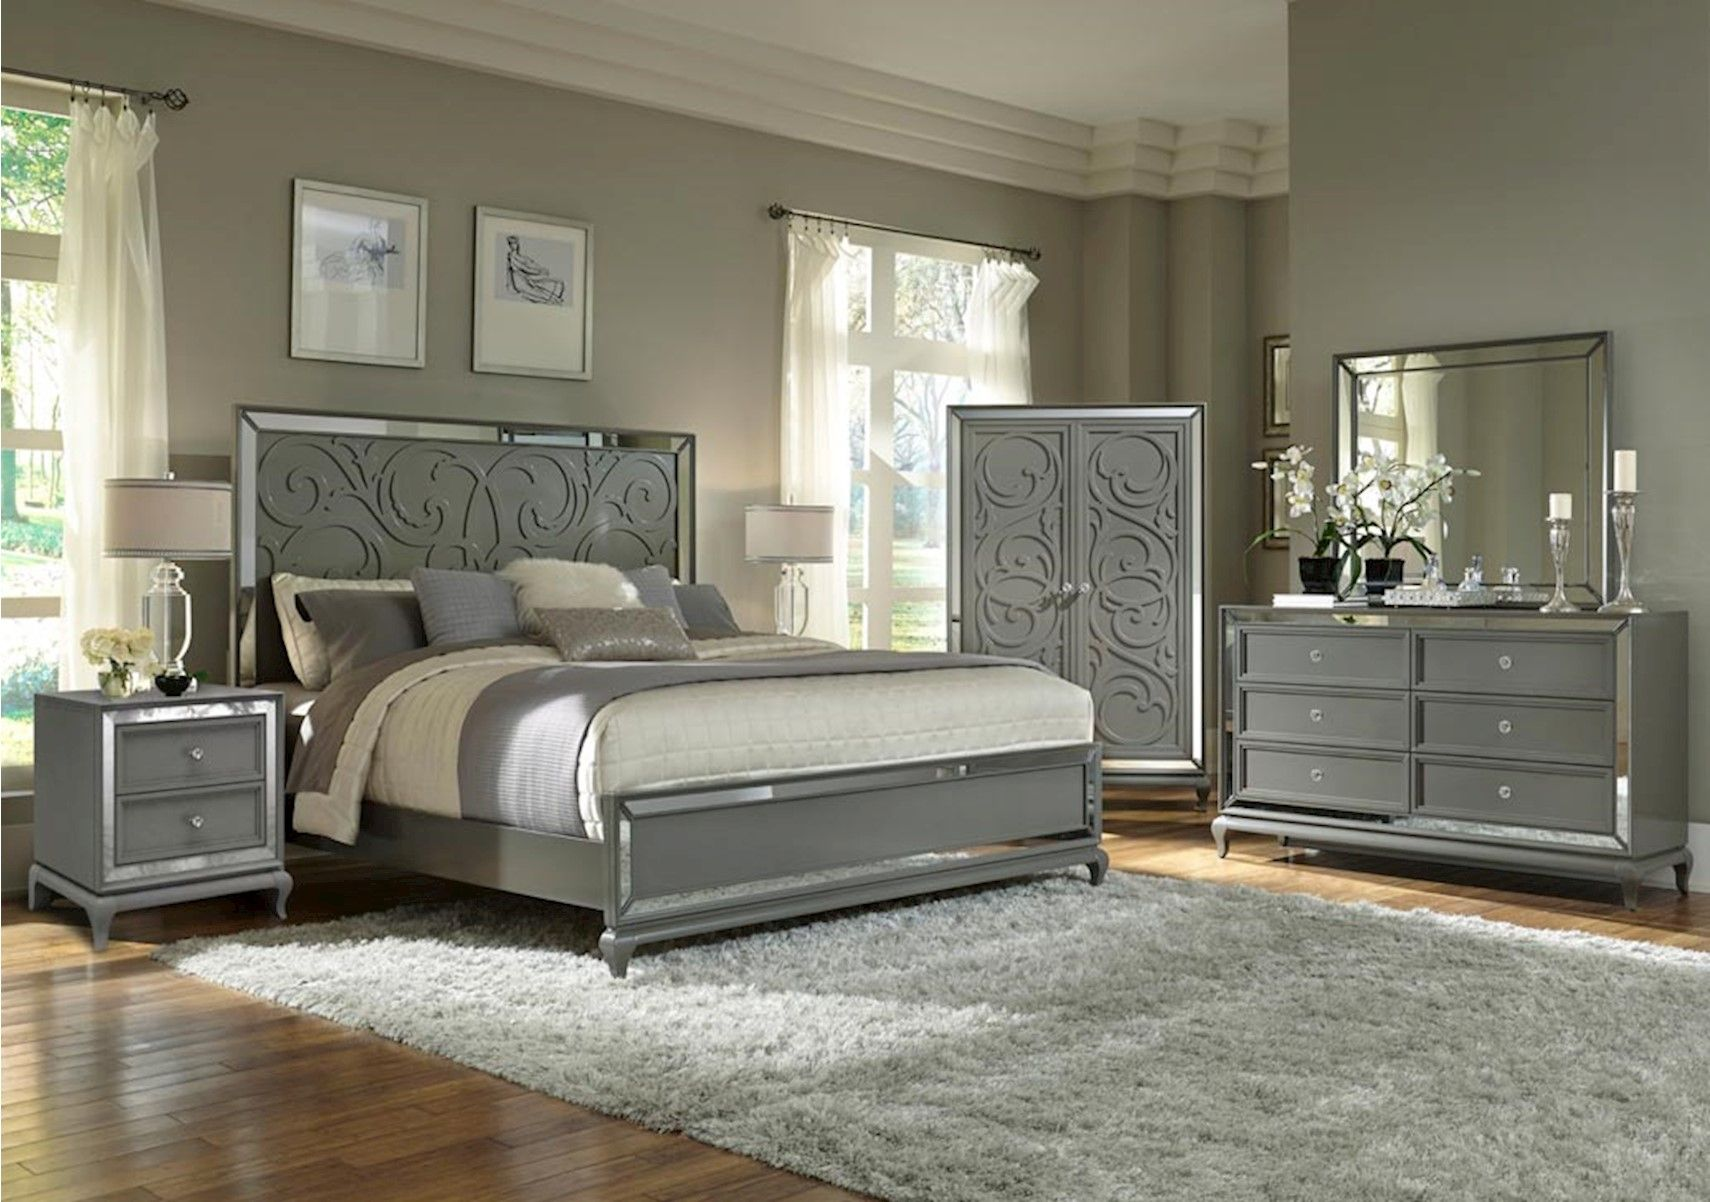 Uptown 4 Pc Queen Bedroom Set Contemporary Style Home